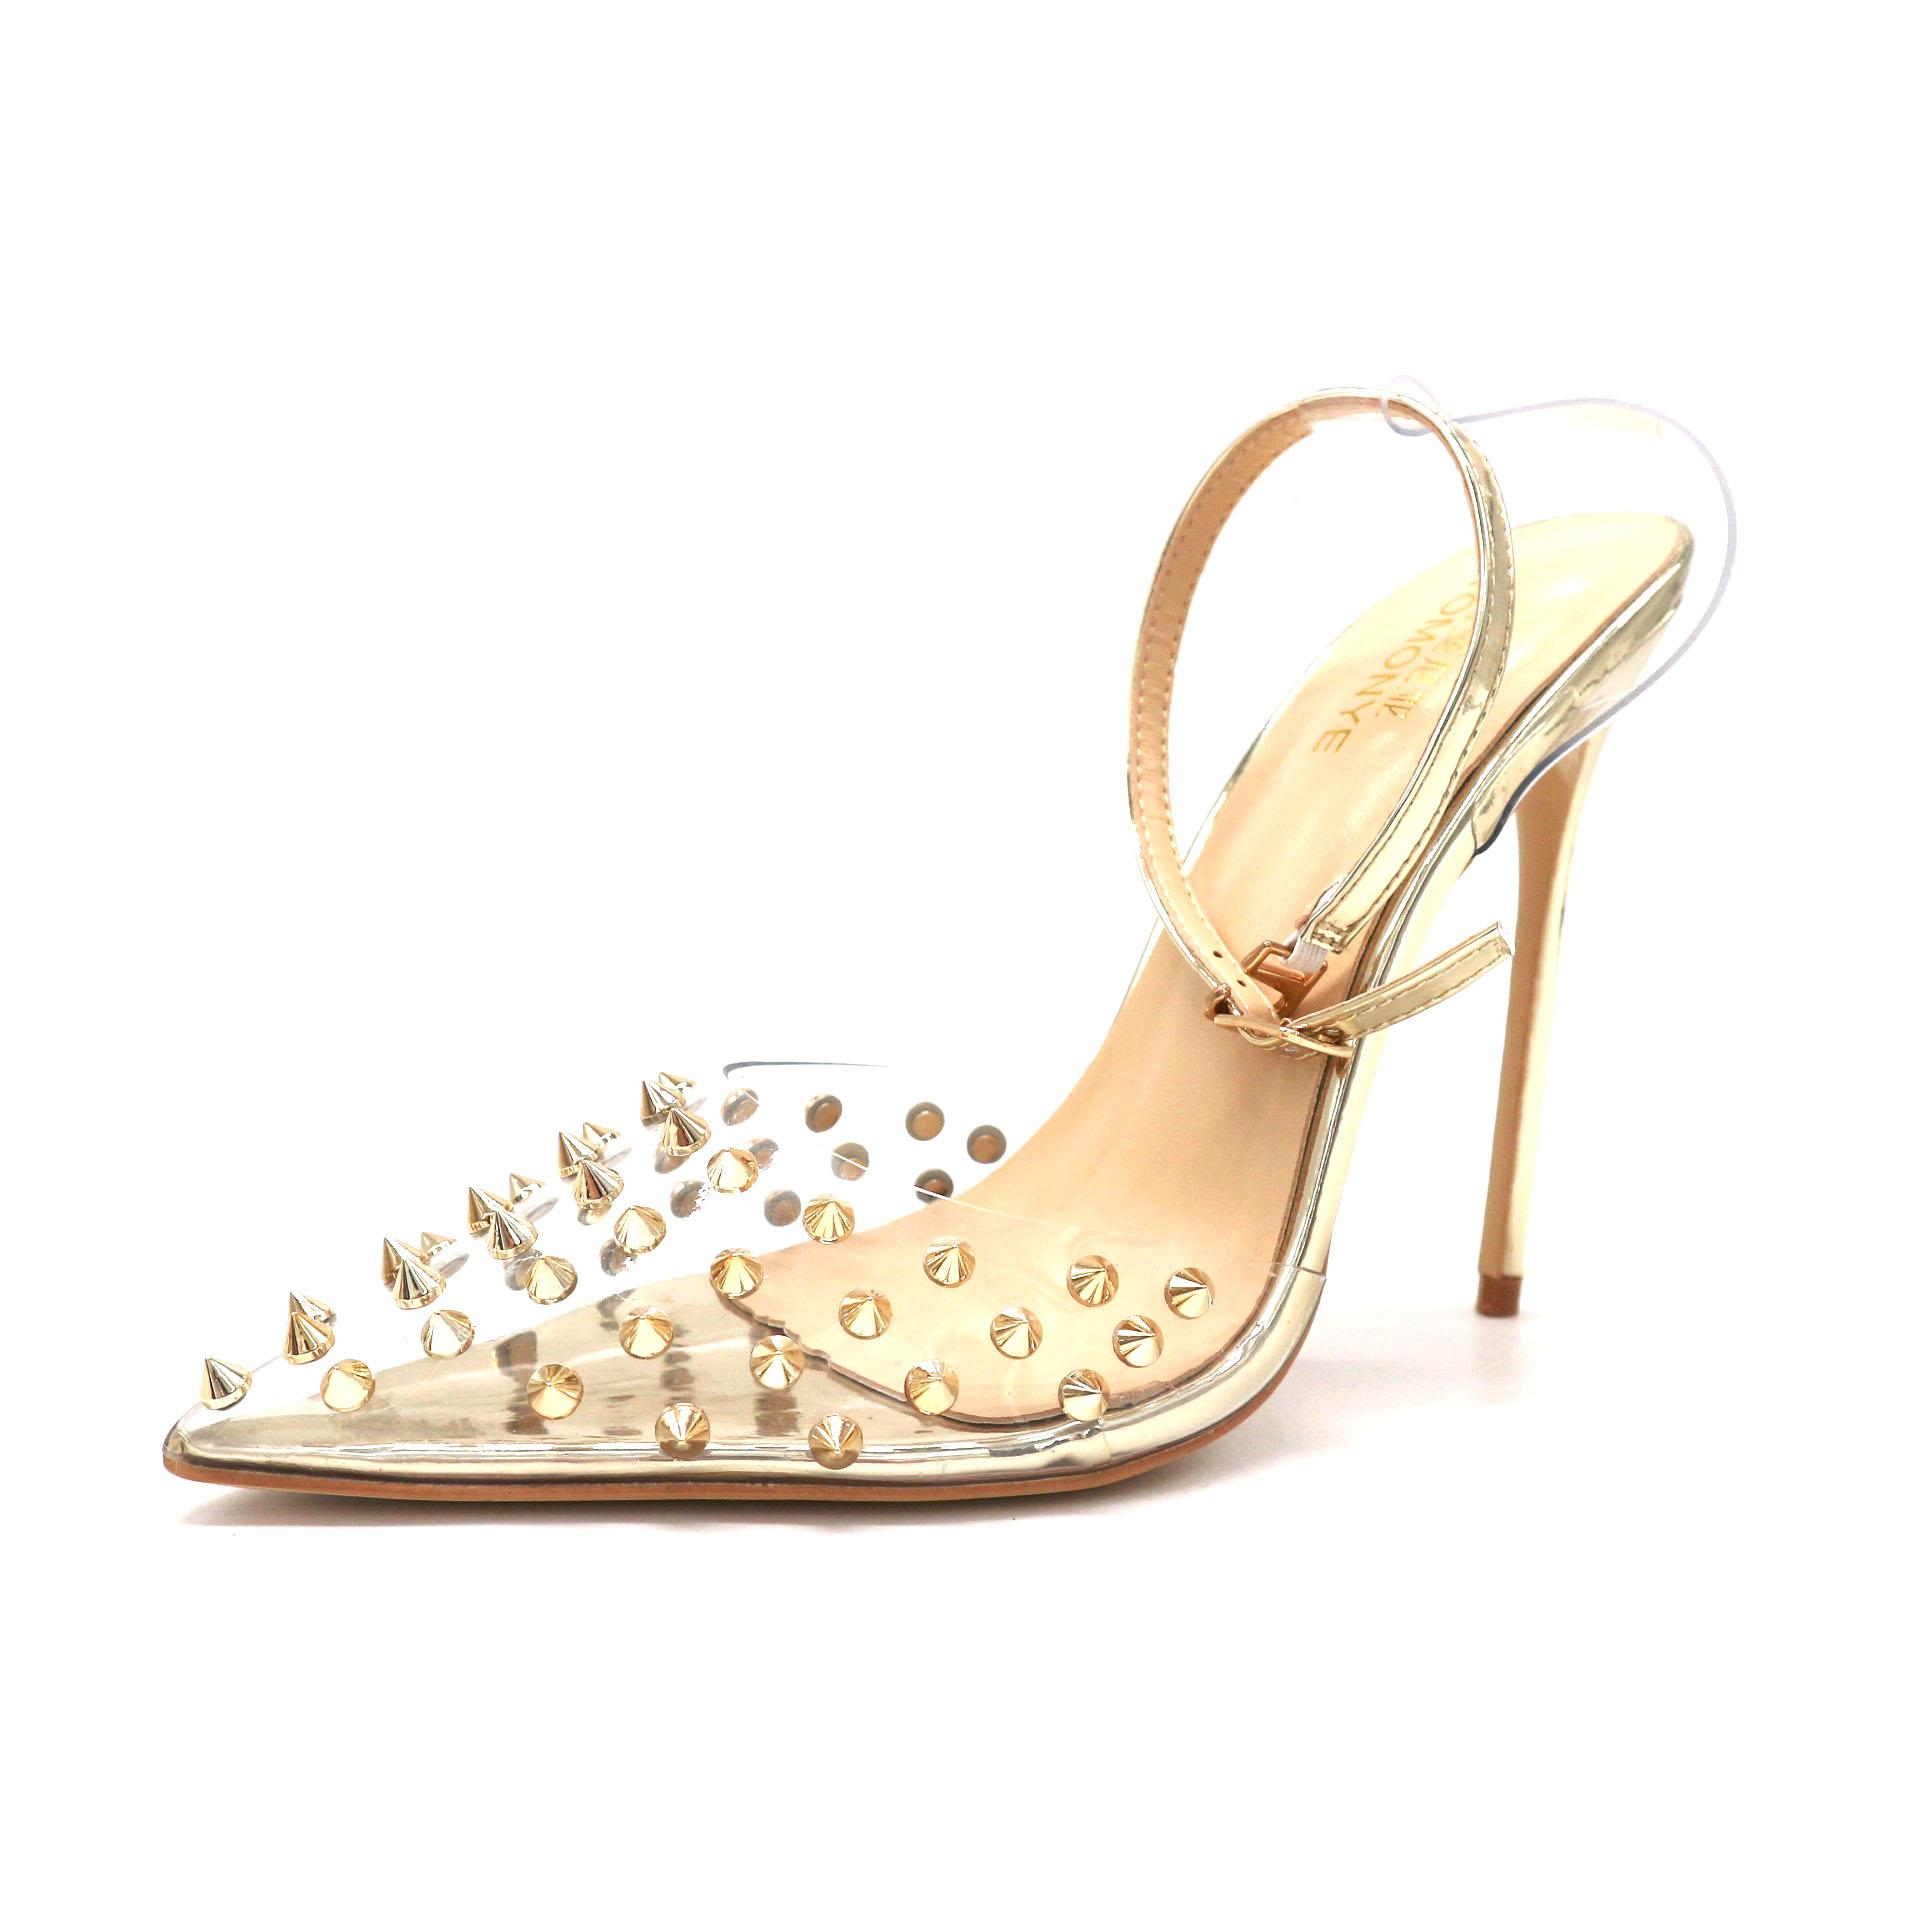 Free shipping fashion Women pumps gold patent leather spikes rivets stripper point toe bride wedding shoes high heels real photo 12cm